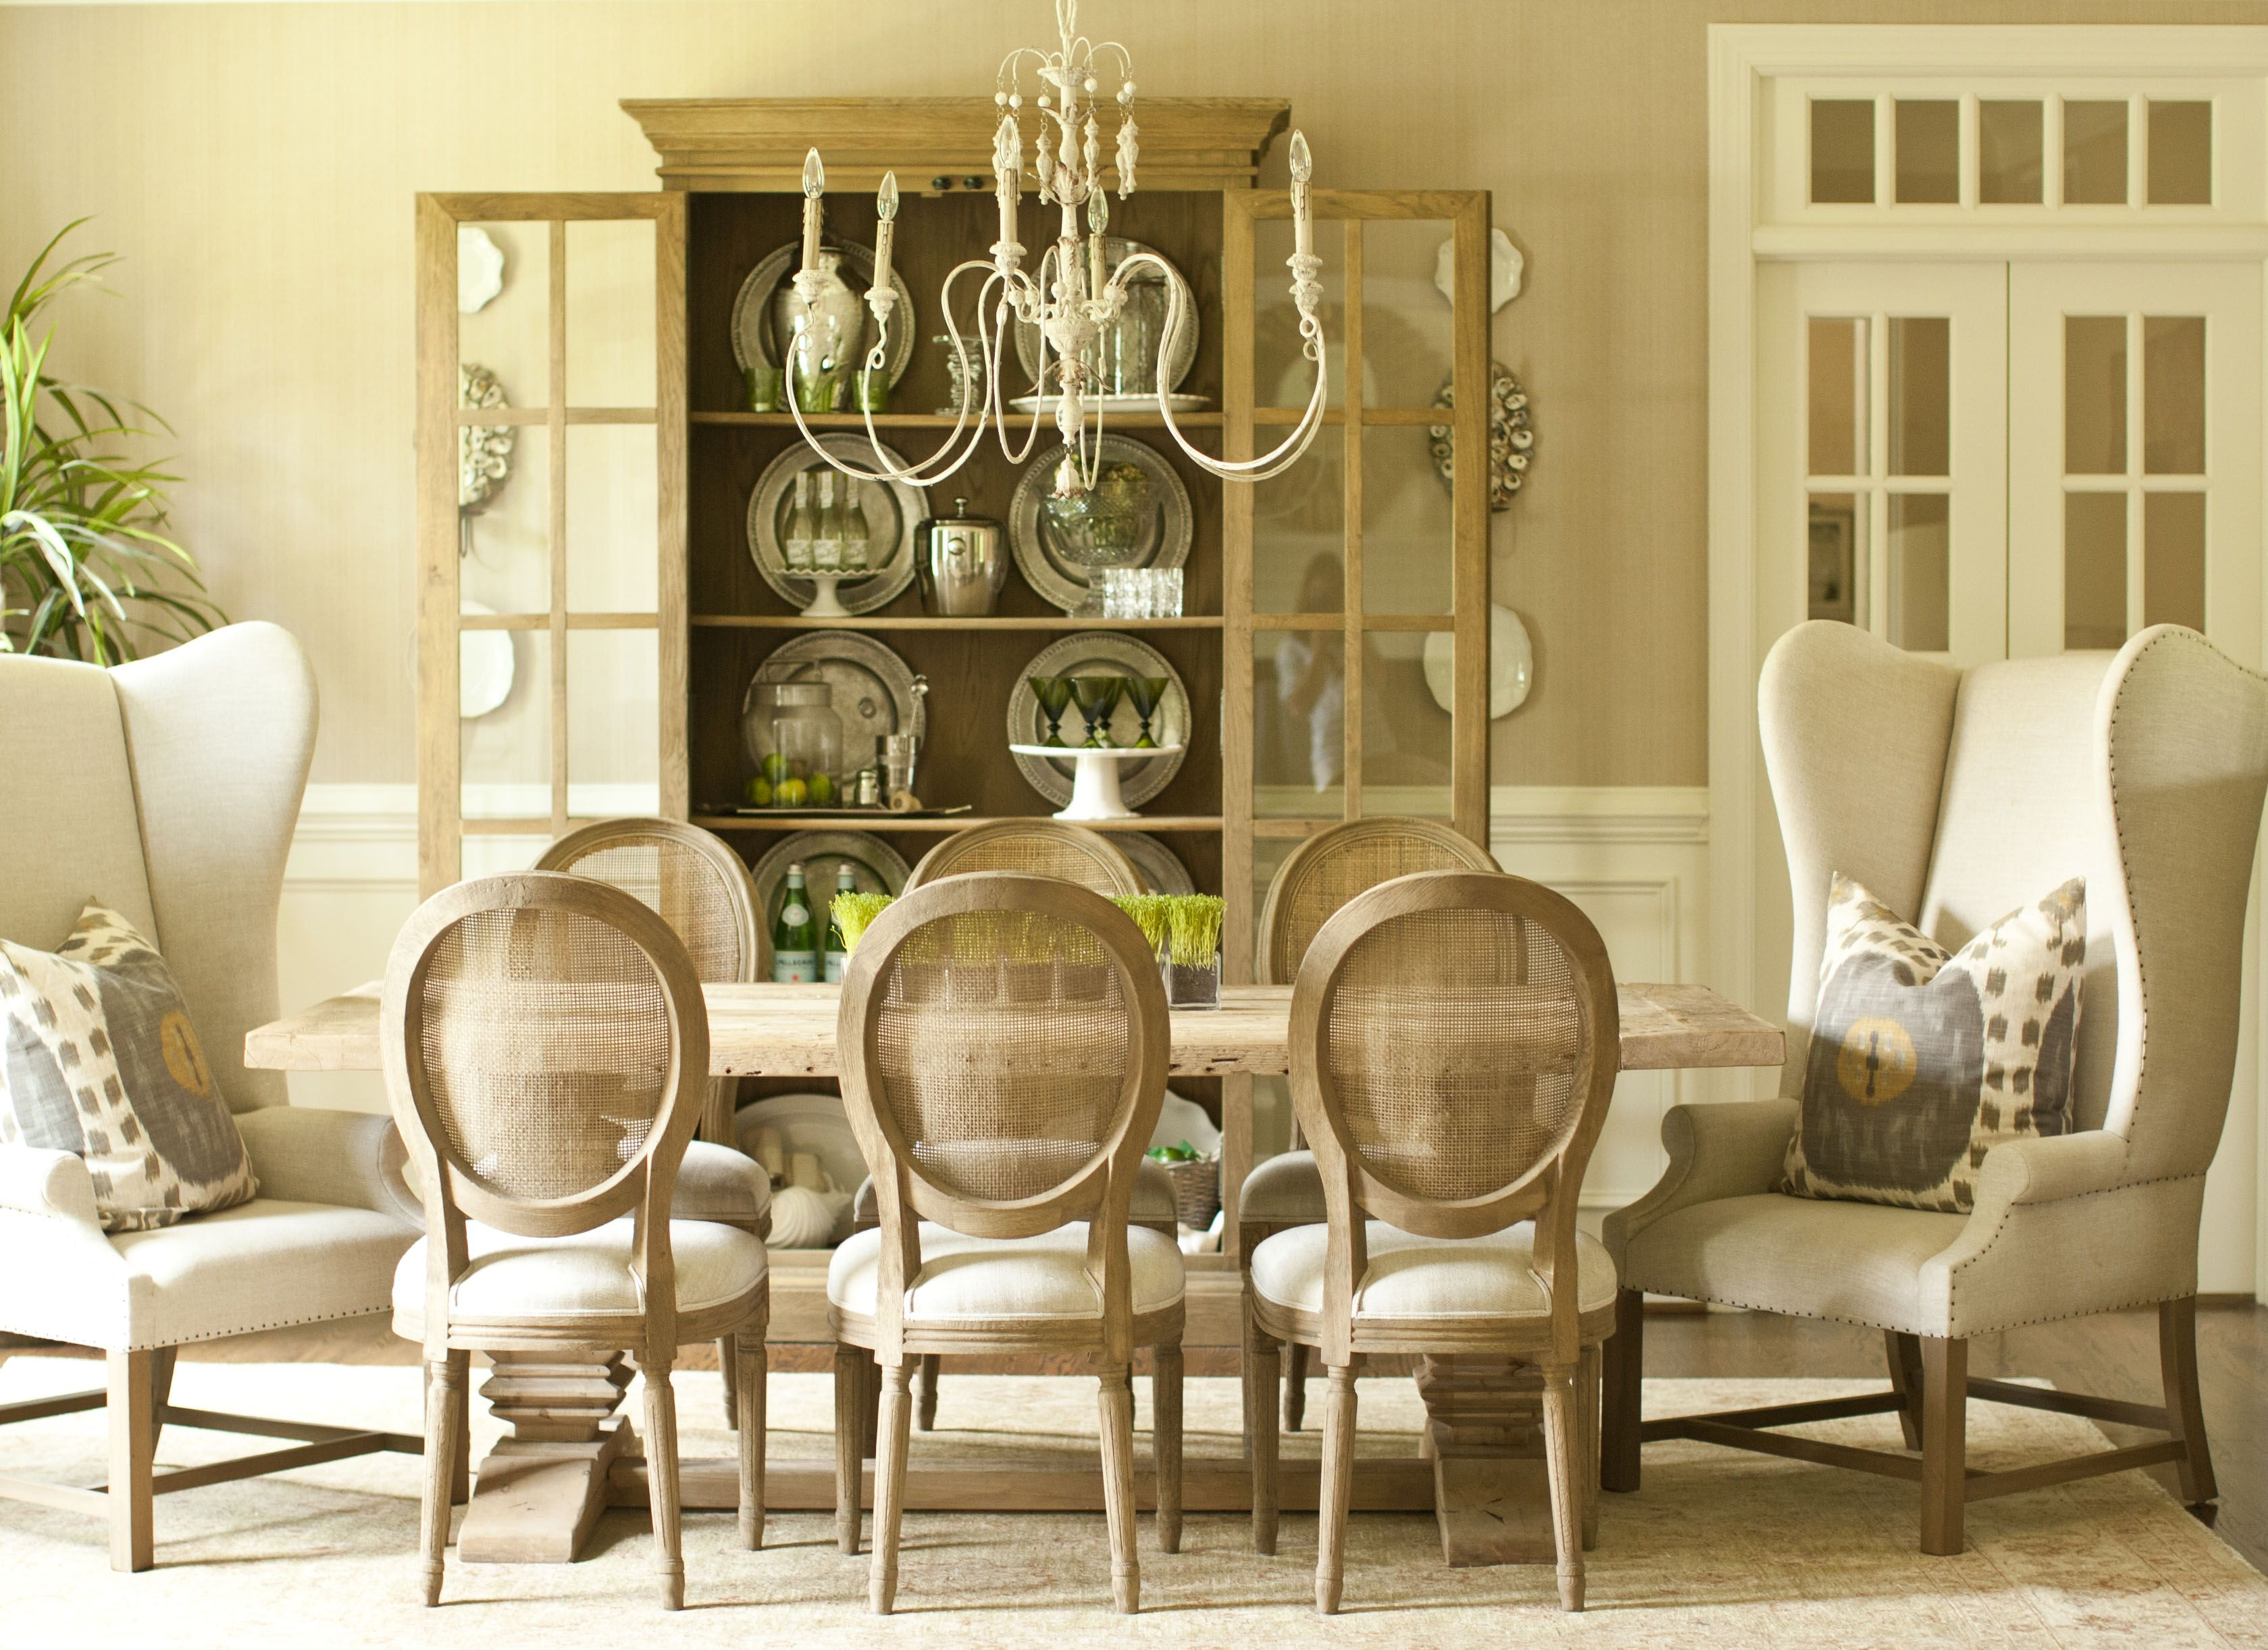 Stephanie shaw design 2013 greige dining room belgian for Oval back dining room chairs